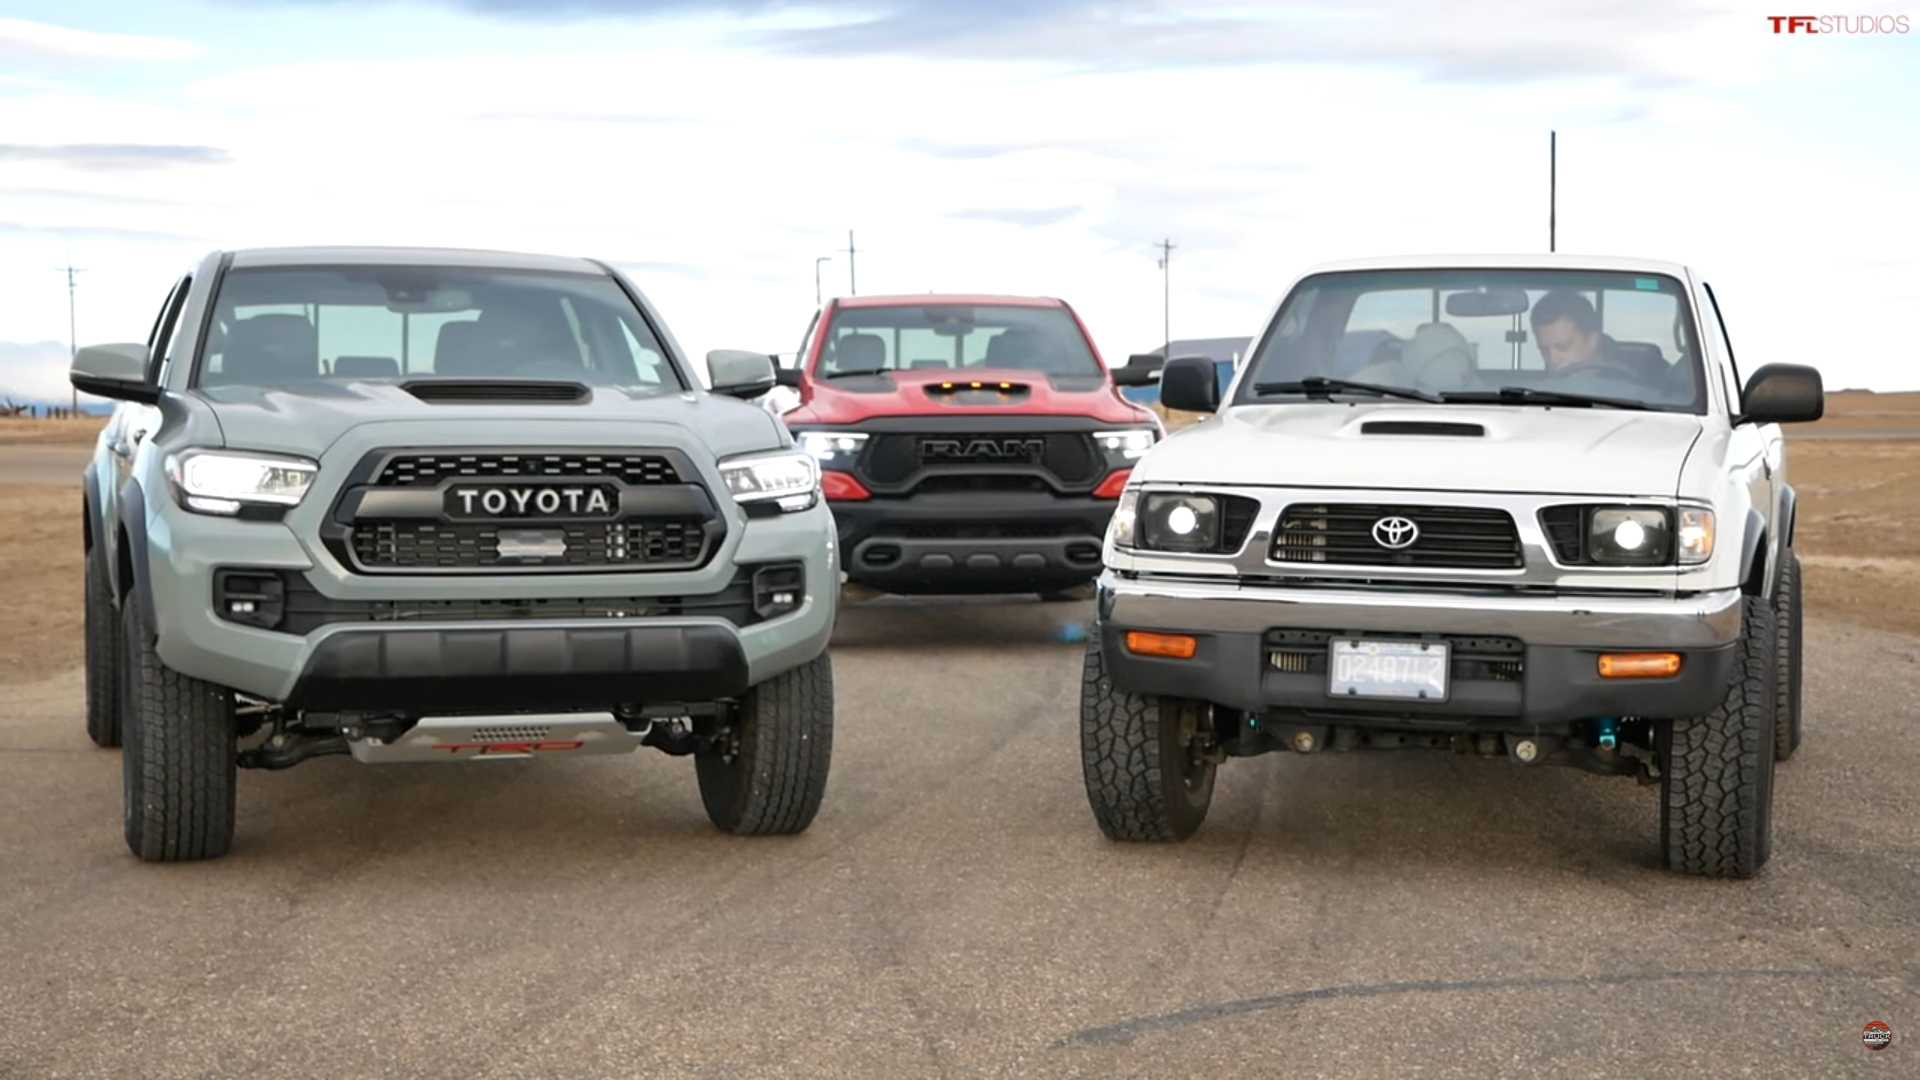 Old Supercharged Toyota Tacoma With 650,000 Miles Drag Races Ram TRX